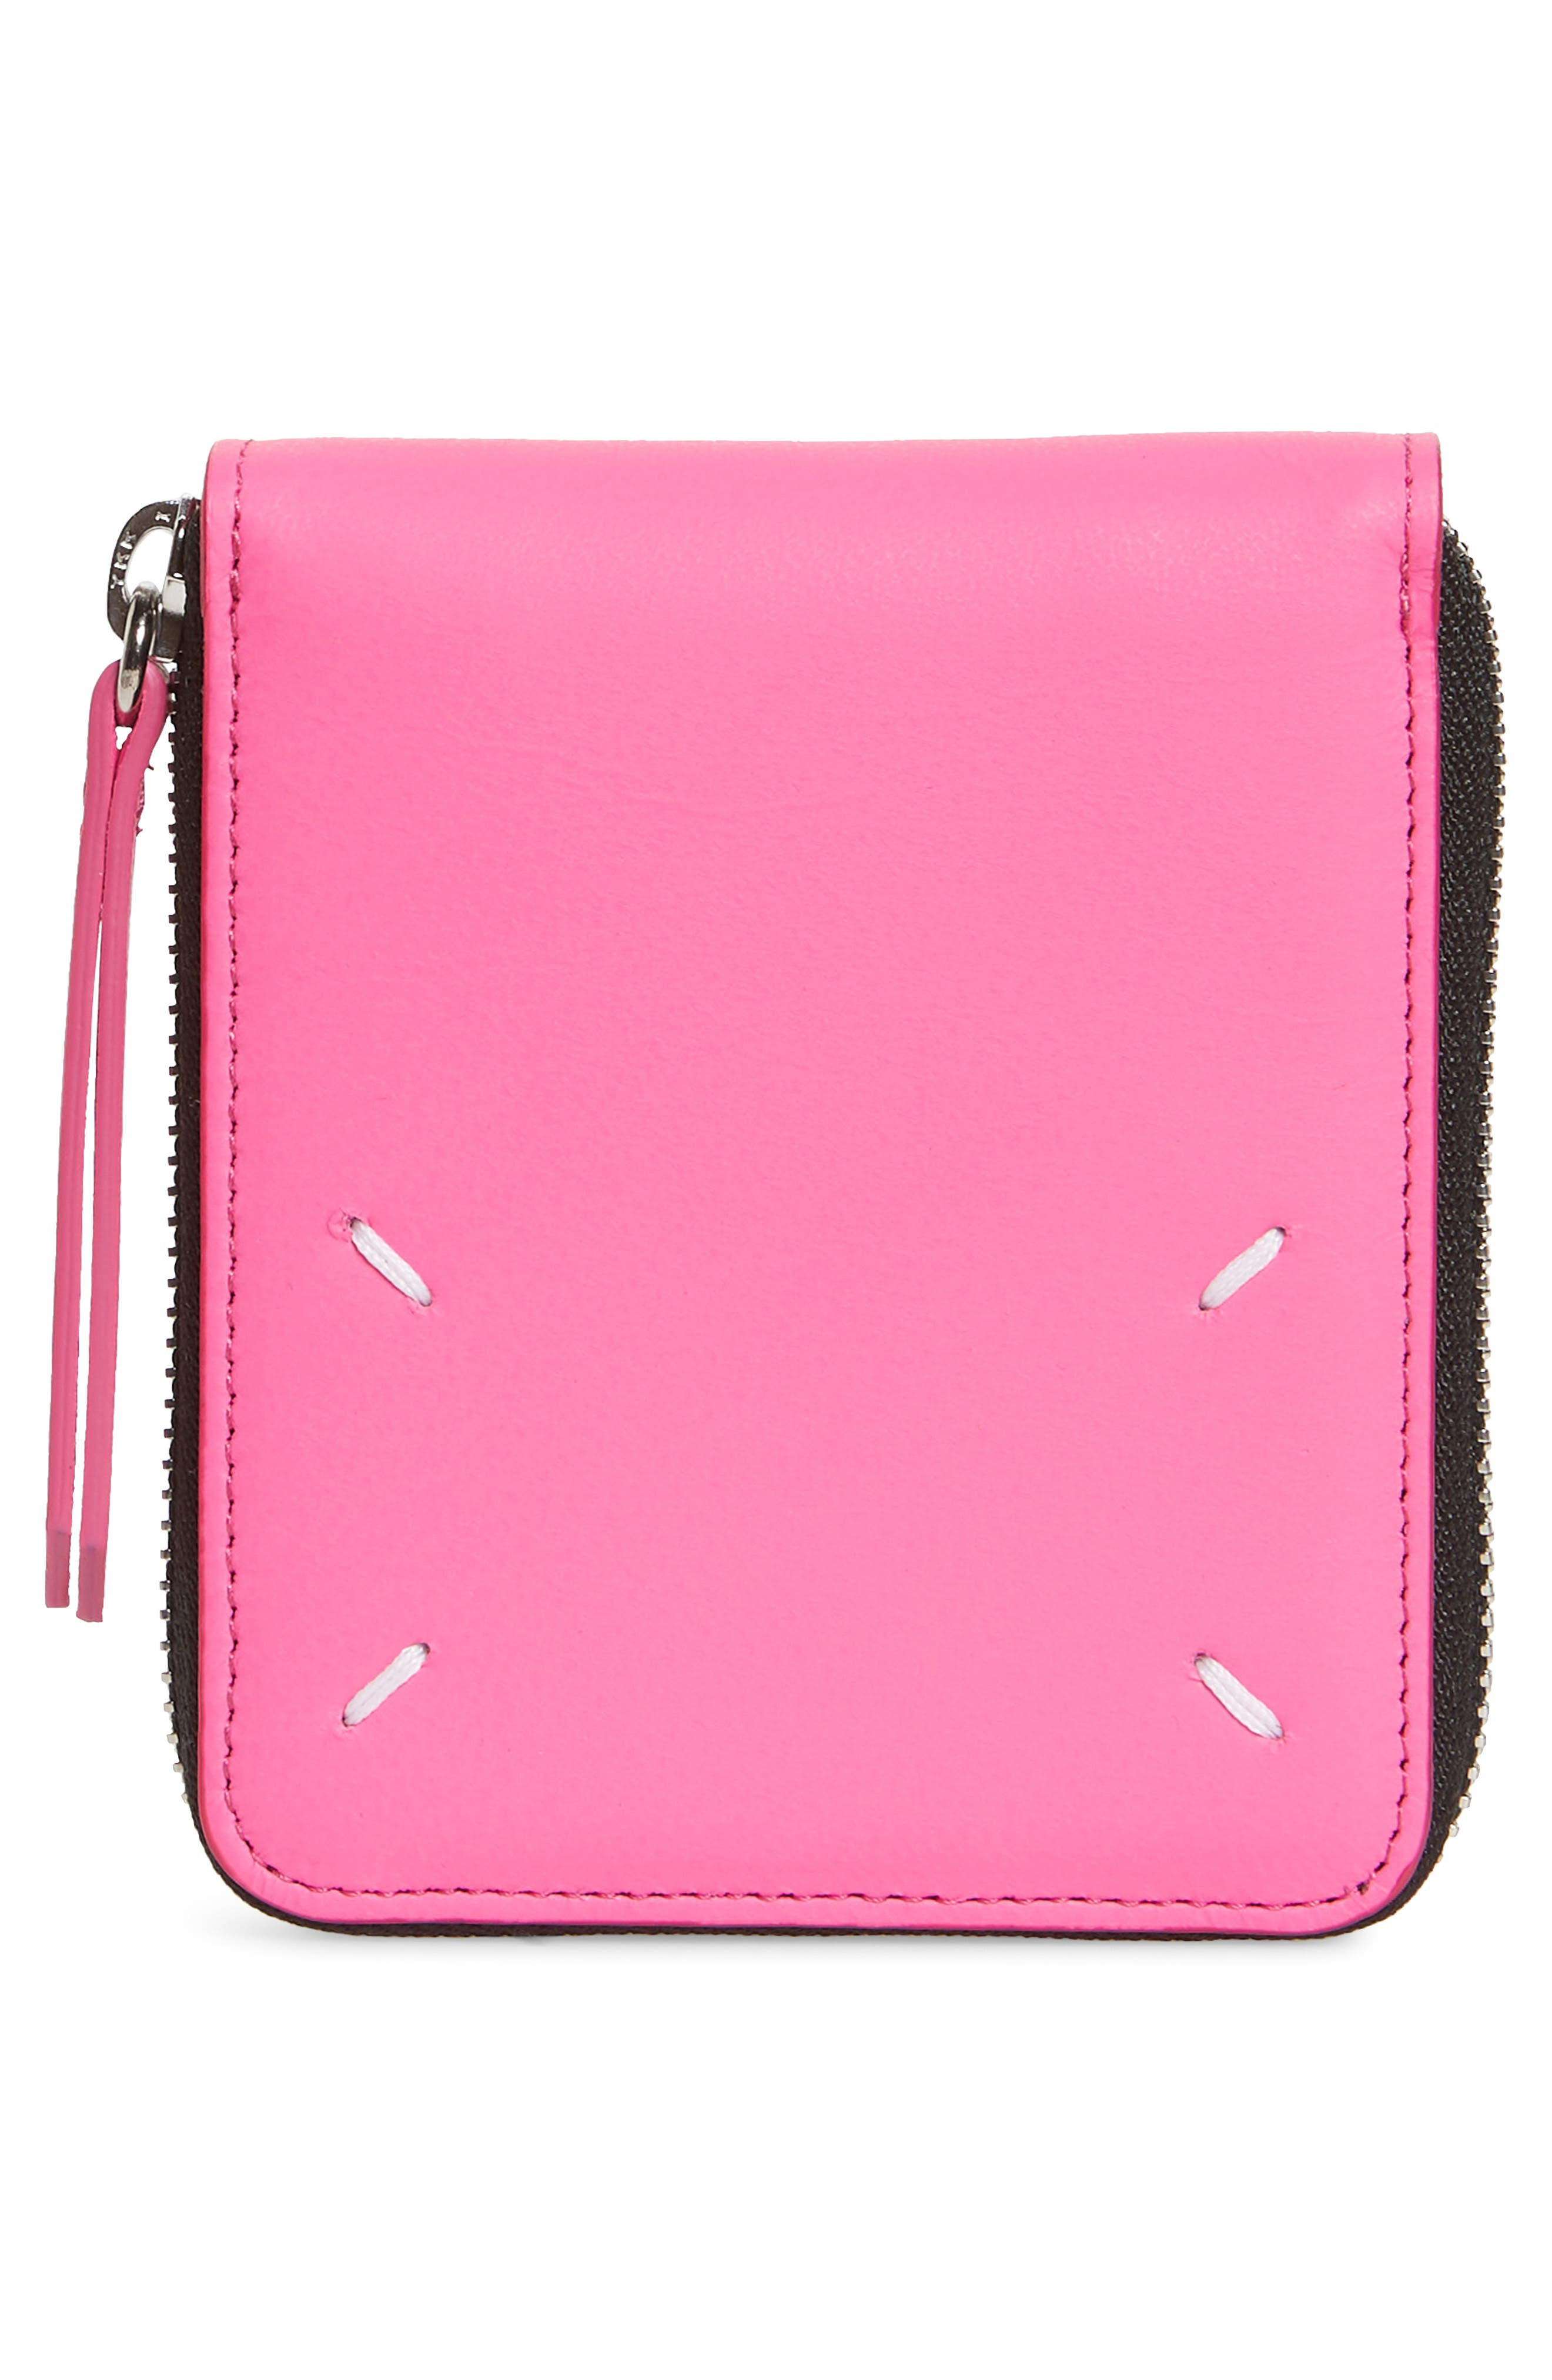 Faux Leather French Wallet,                             Alternate thumbnail 4, color,                             PINK